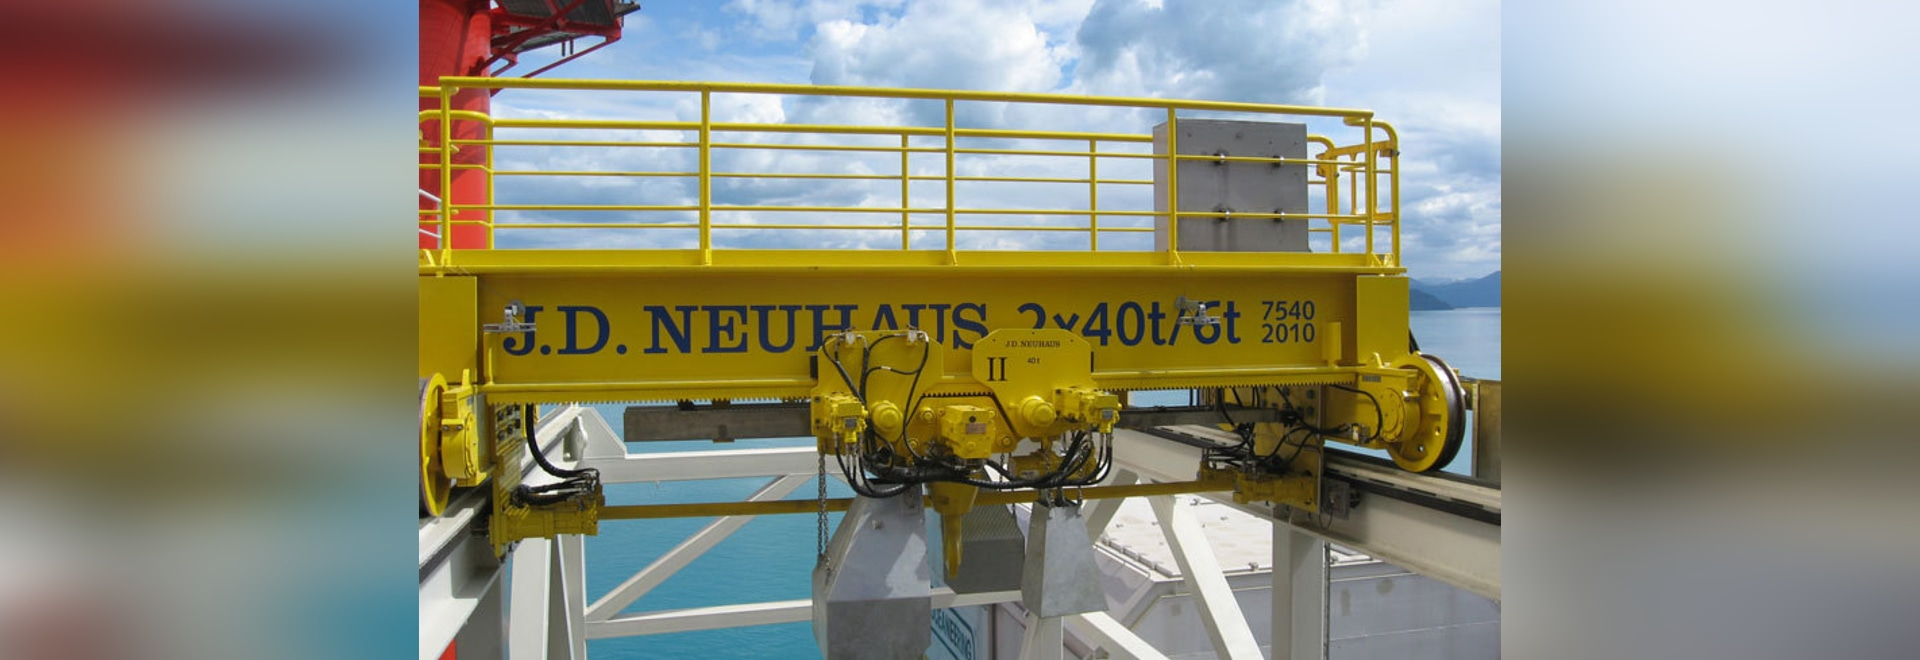 A hydraulic JDN crane system with an 80 tonne carrying capacity, shown in an offshore location